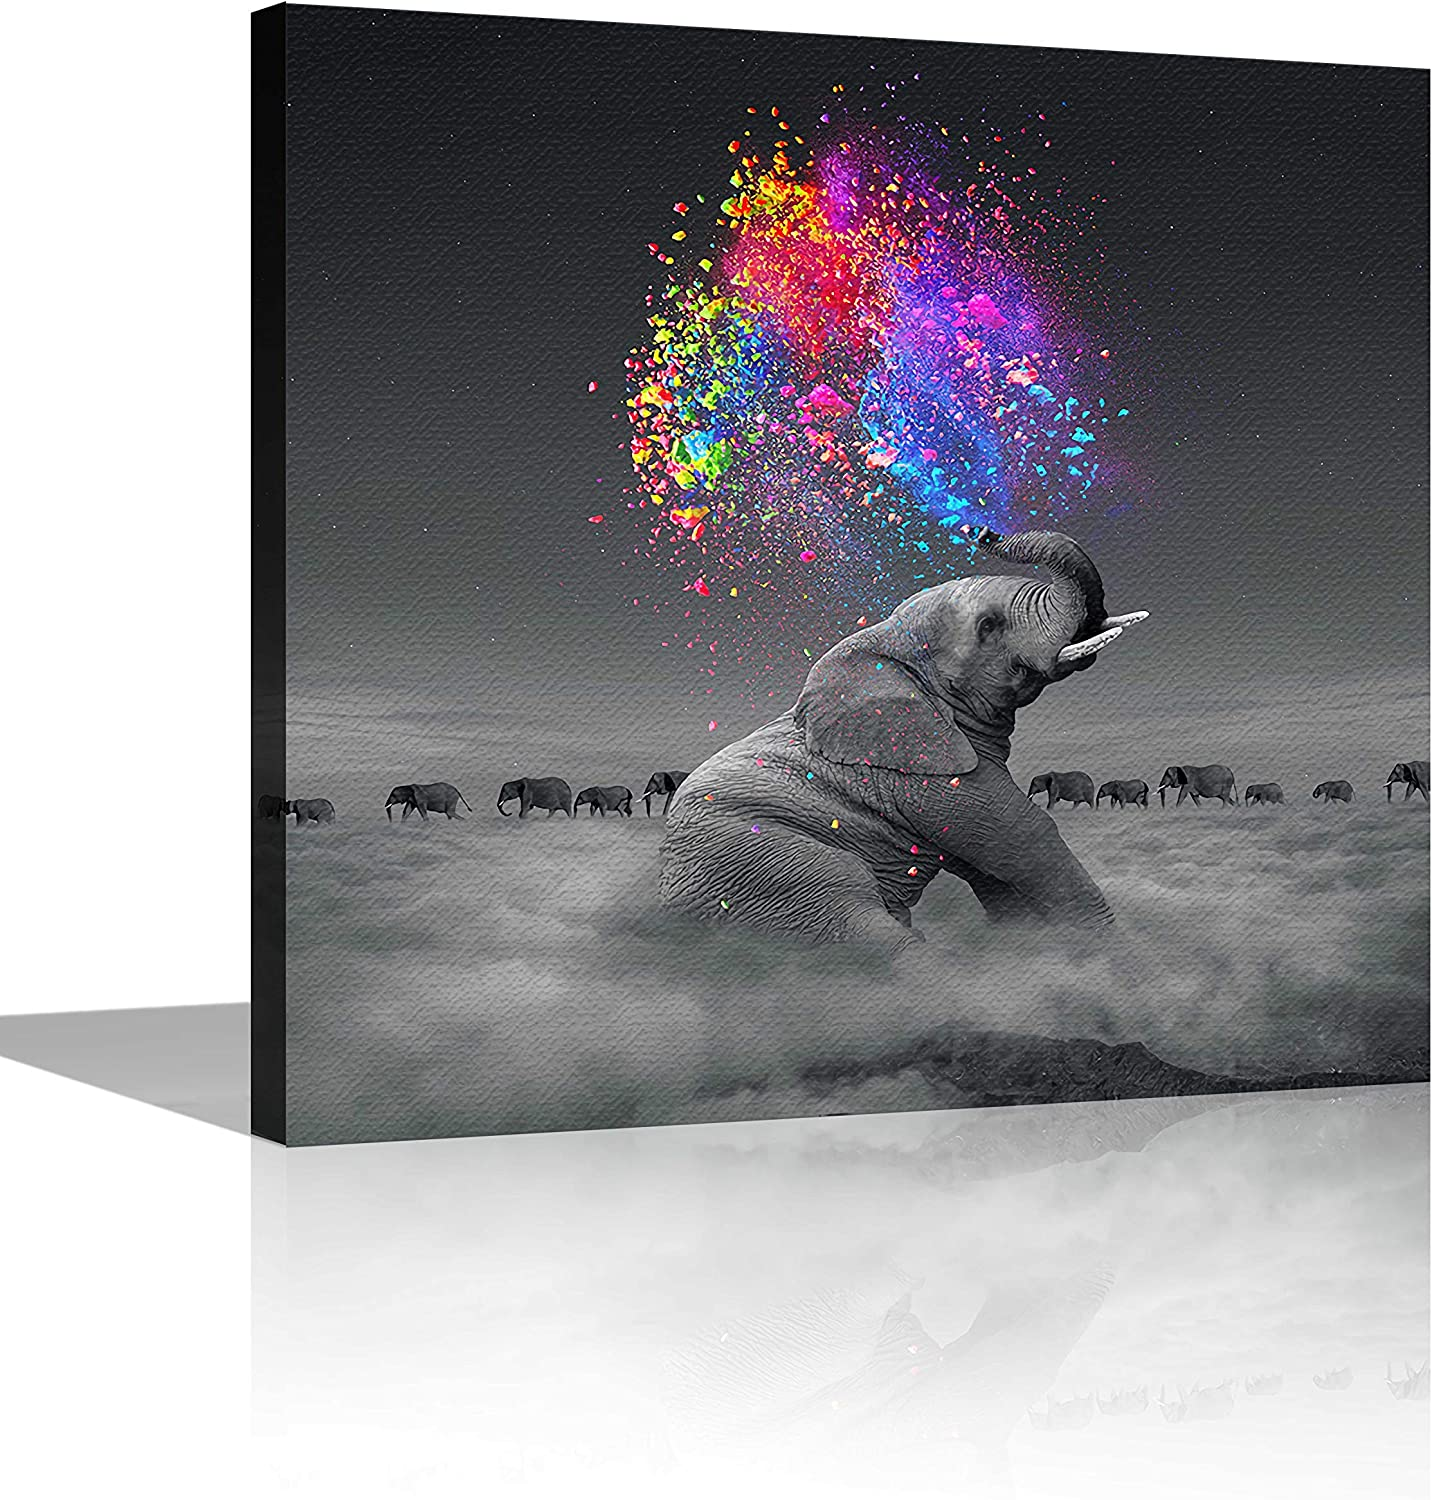 Square Canvas Wall Art The Elephant Squirting Colorful Water Modern Wall Art Decor for Home,Office,Hotel